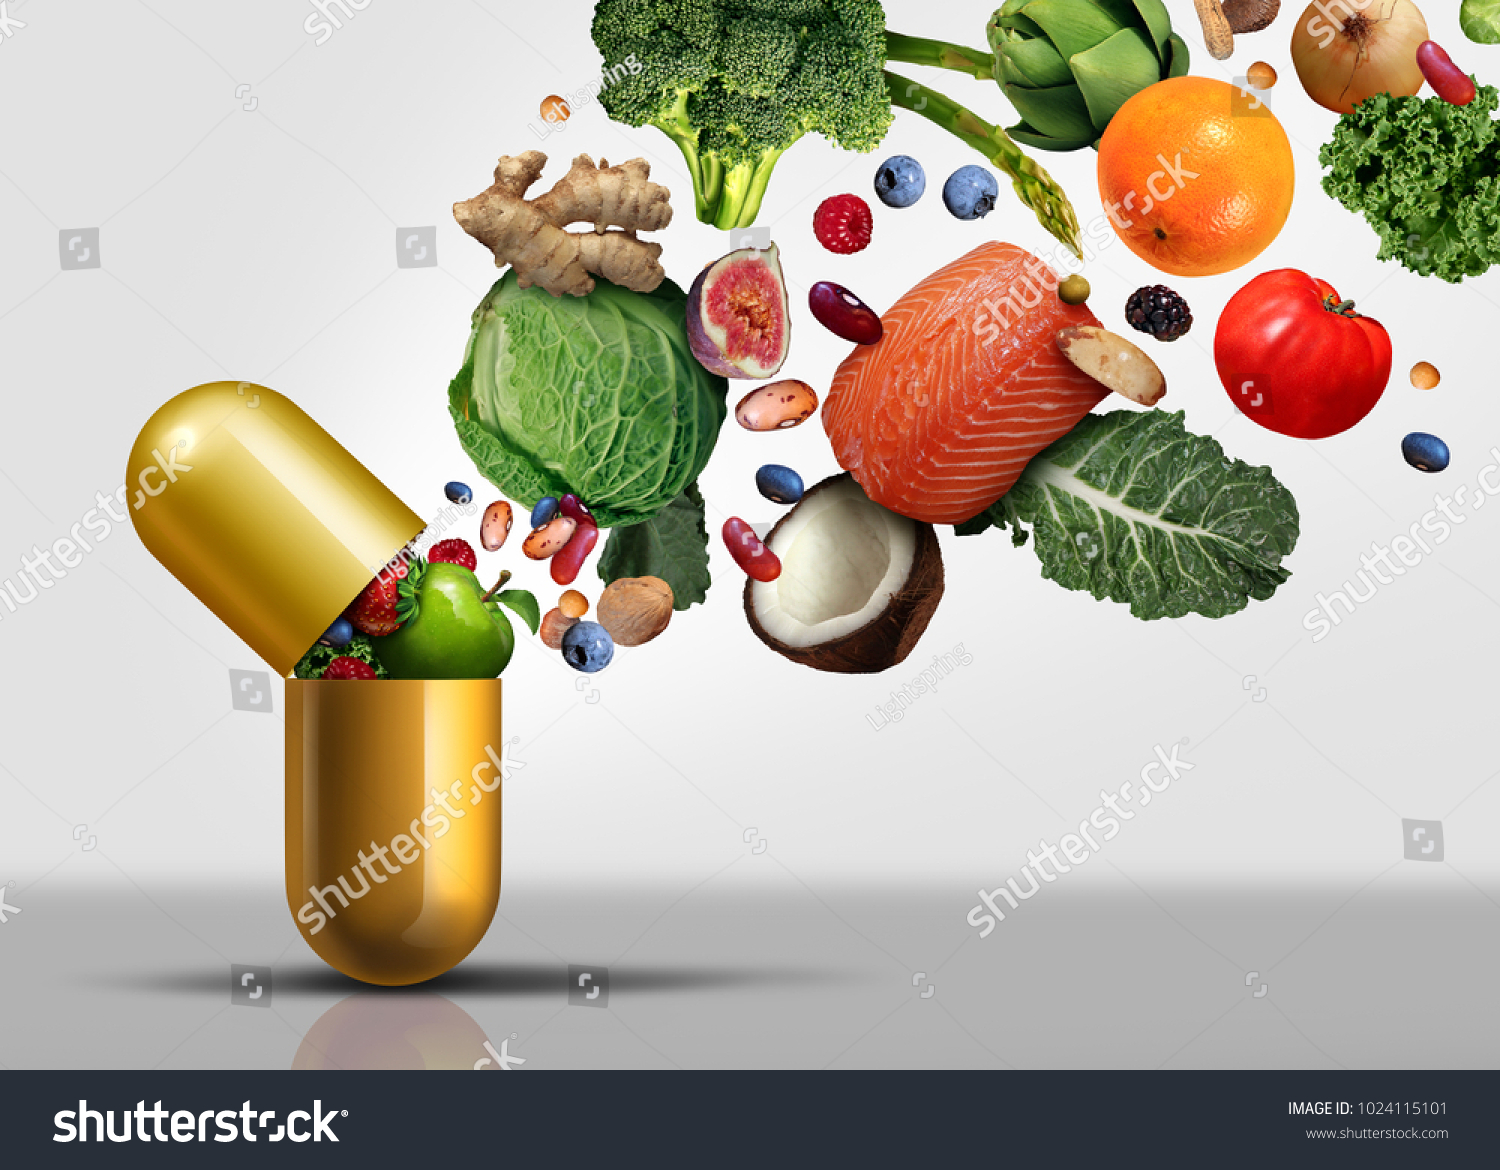 What Are The Benefits In Taking Multivitamins